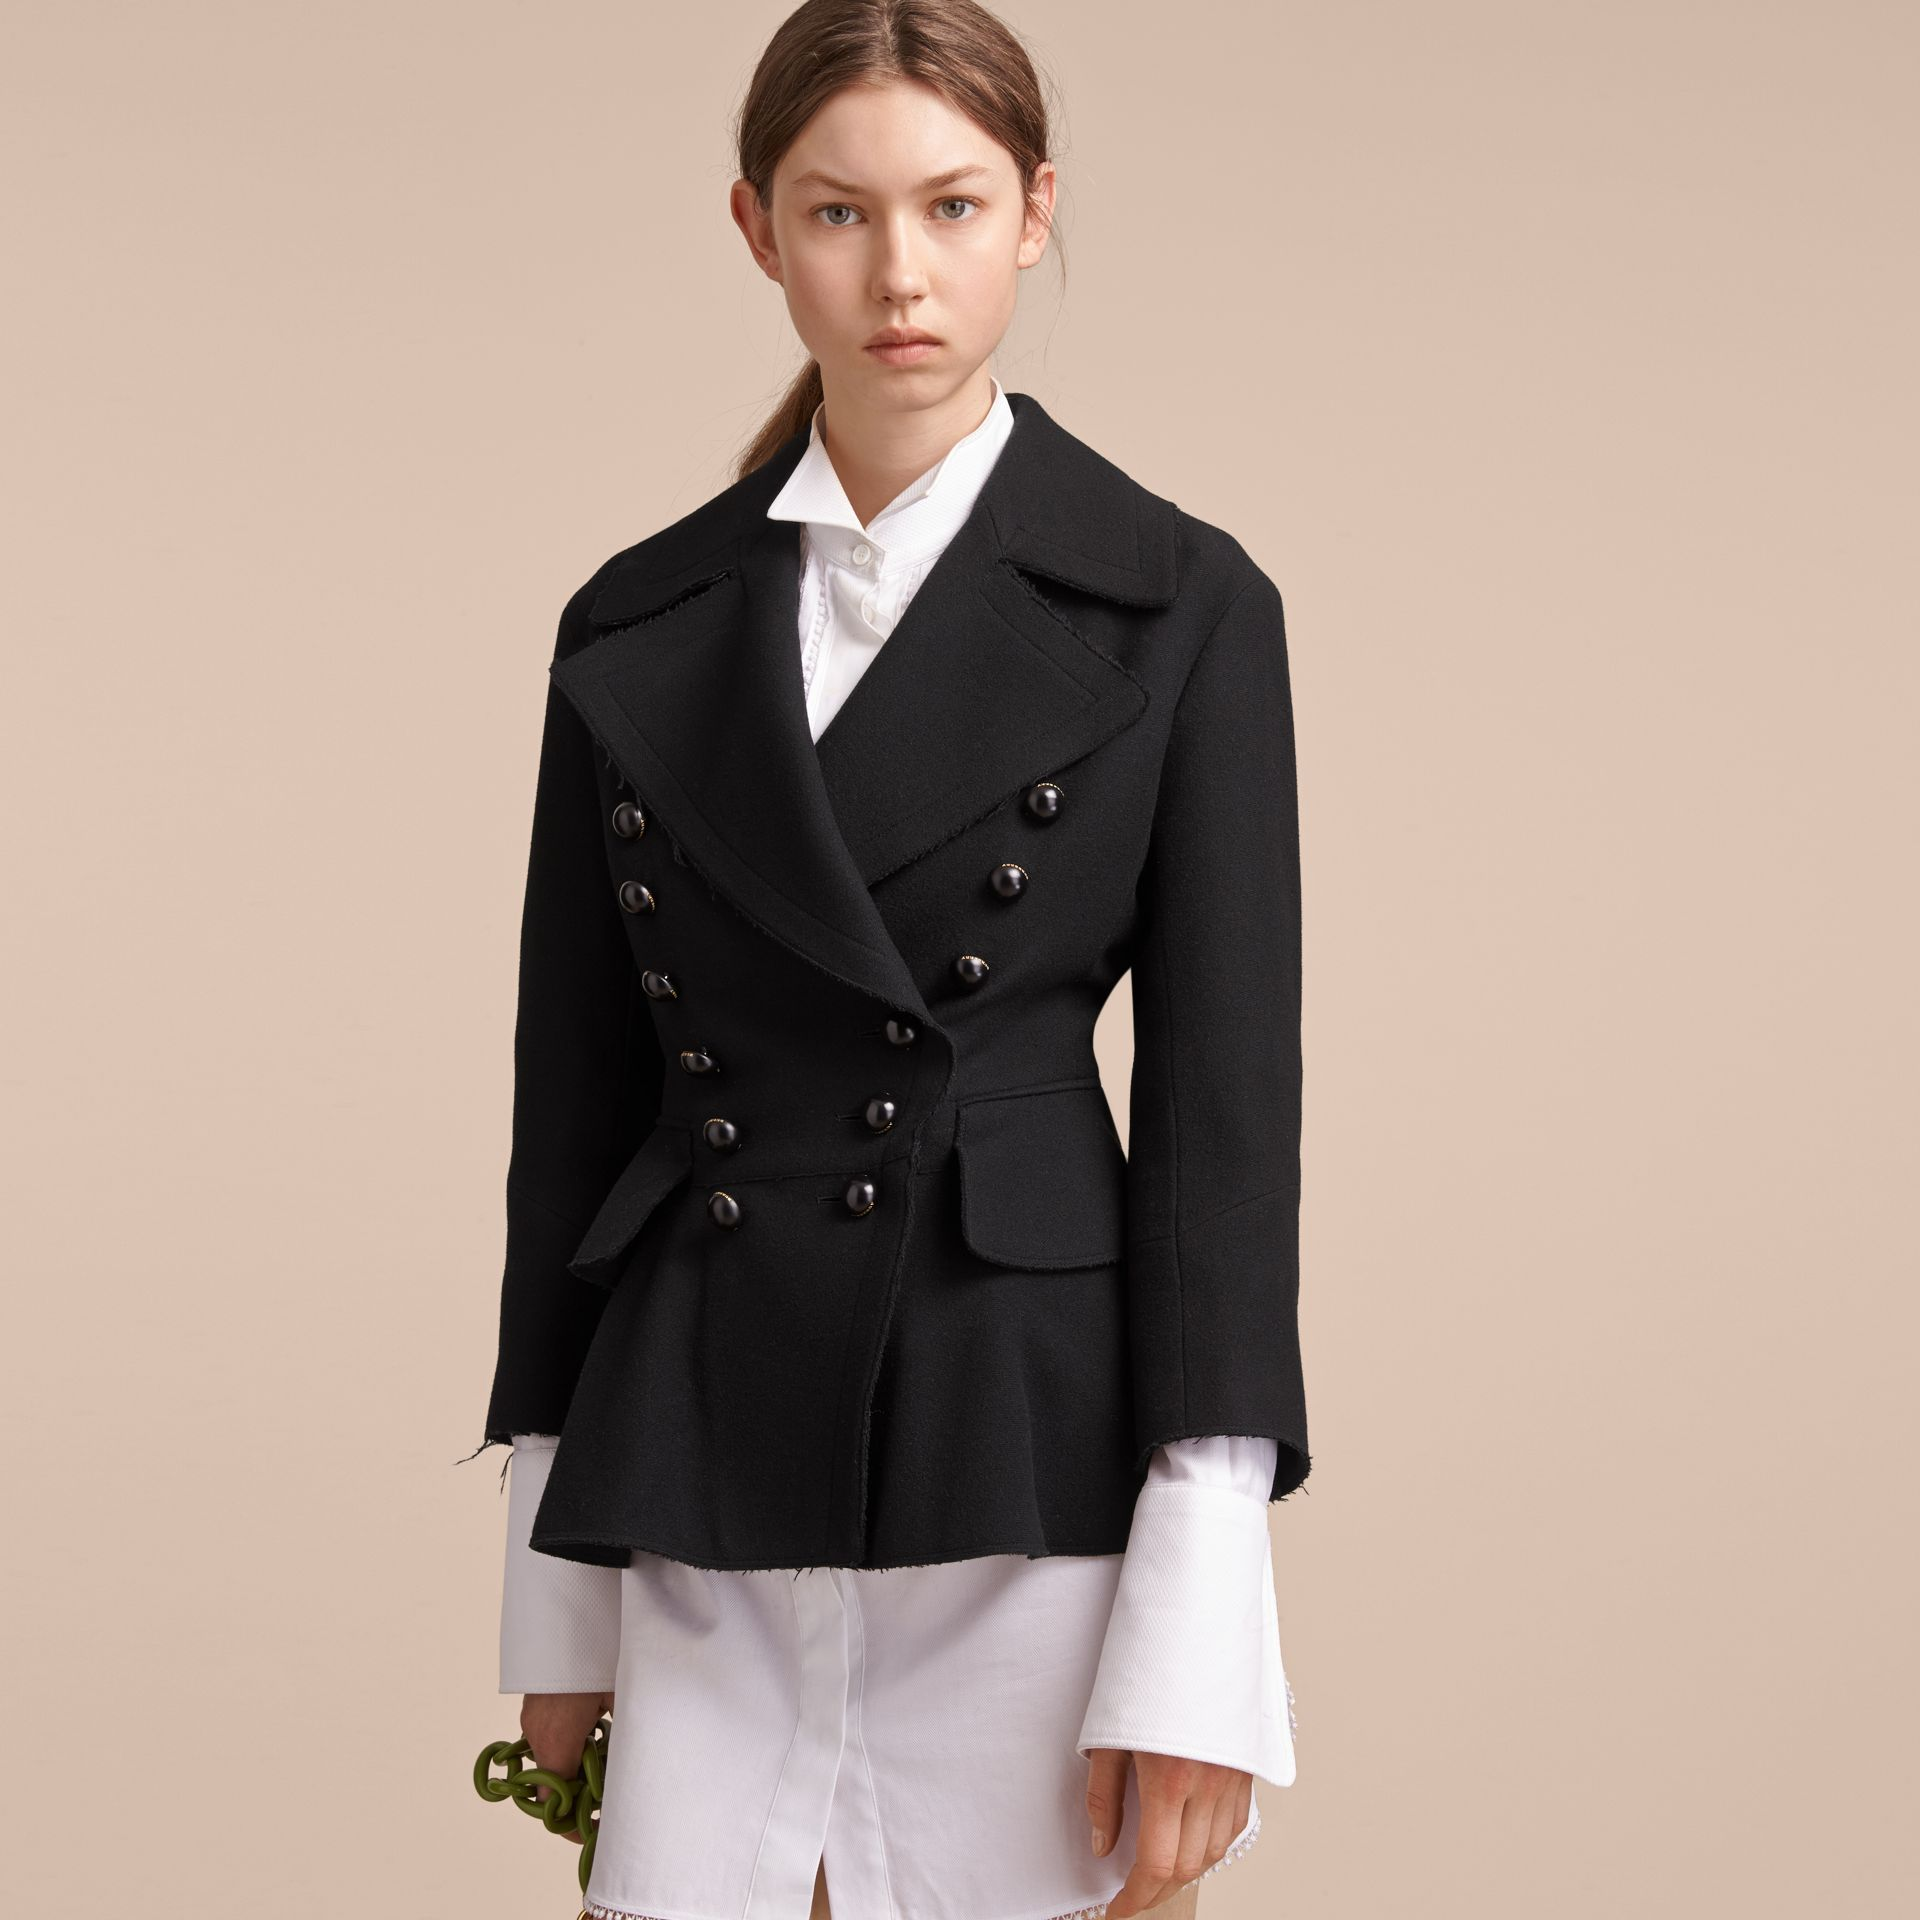 Wool Blend Peplum Jacket in Black - Women | Burberry - gallery image 1